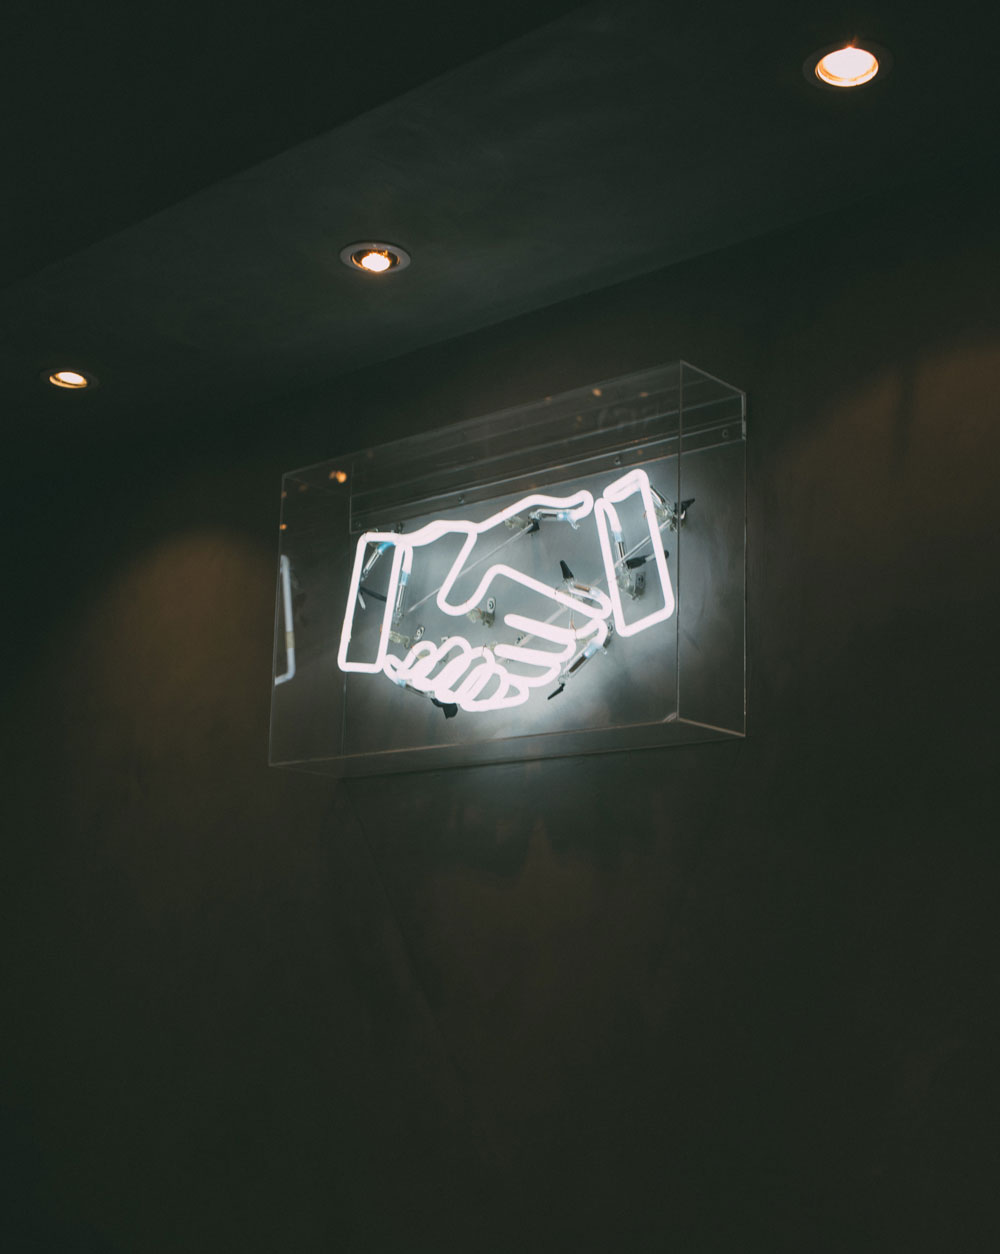 Neon sign of two hands shaking.